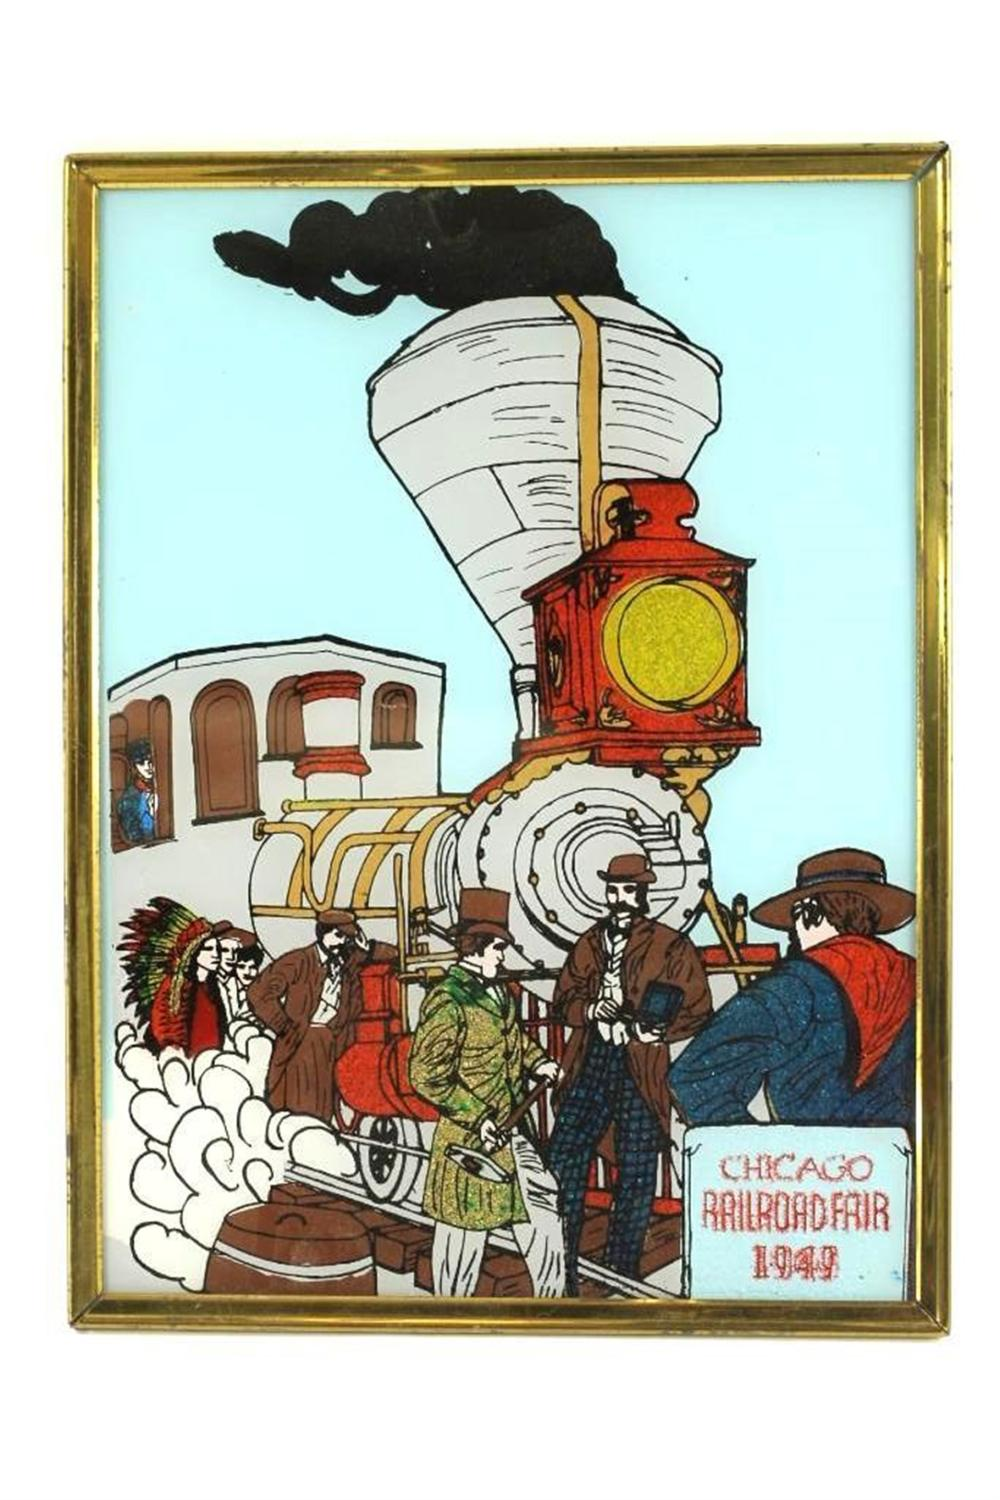 Framed Glass Train Picture Commemorating the Chicago Railroad Fair of 1949